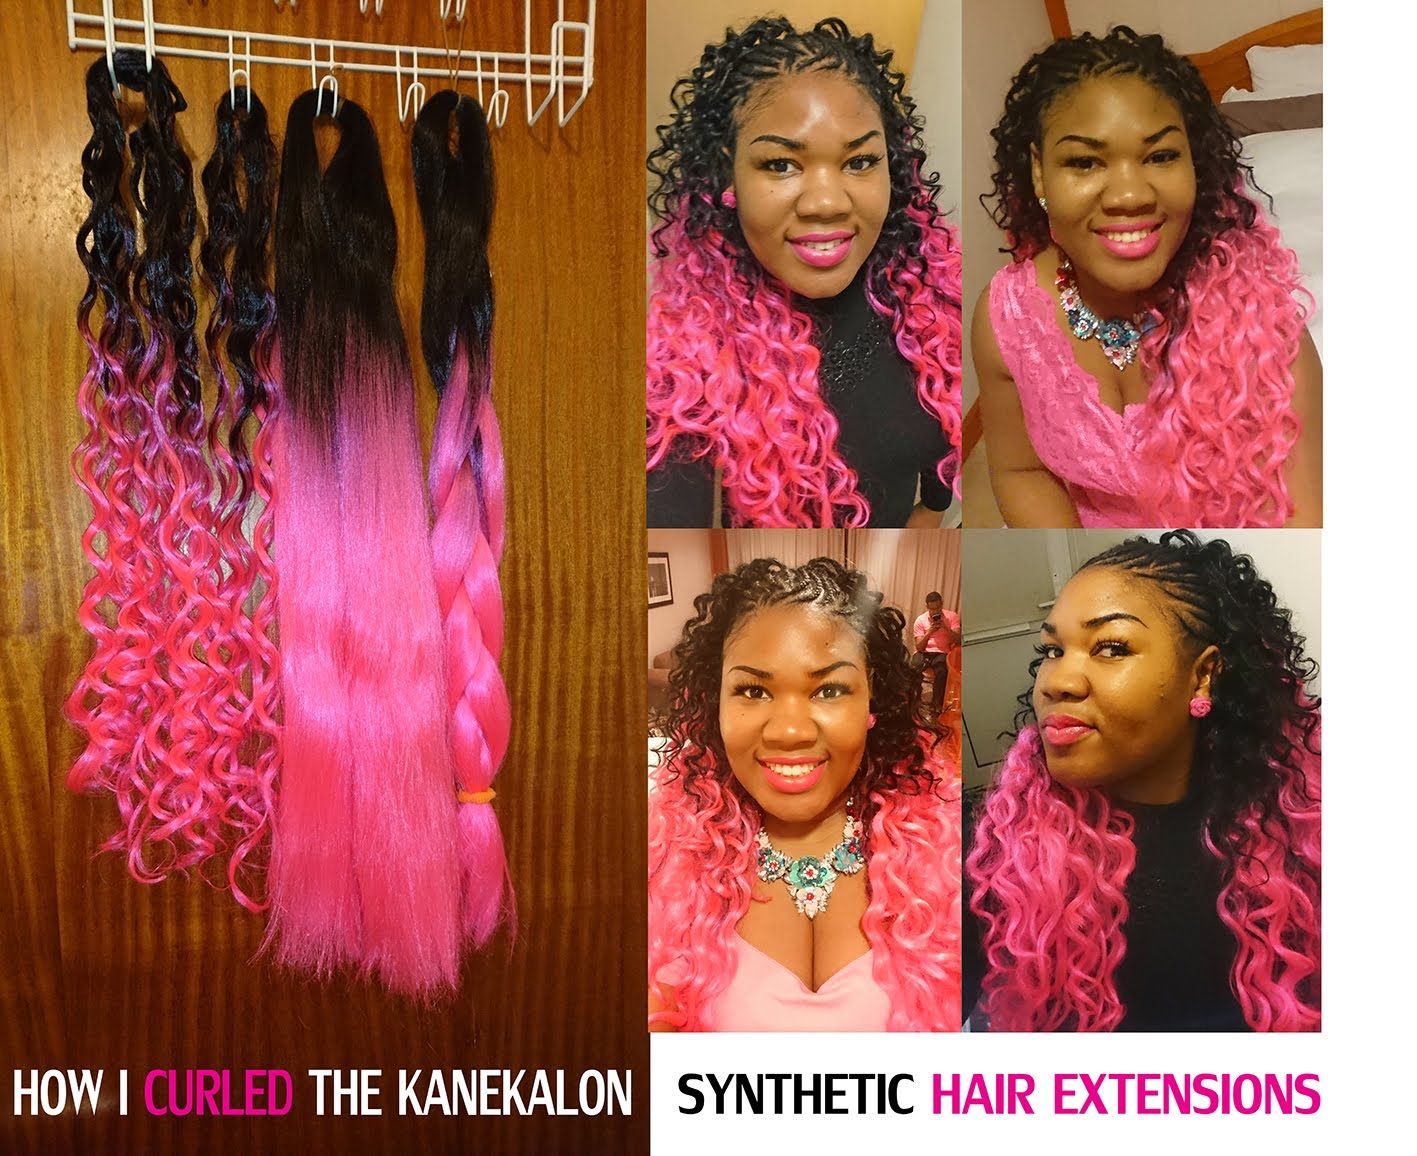 How to CURL SYNTHETIC HAIR with FLEXI RODS FOAM ROLLERS HOT PINK ...